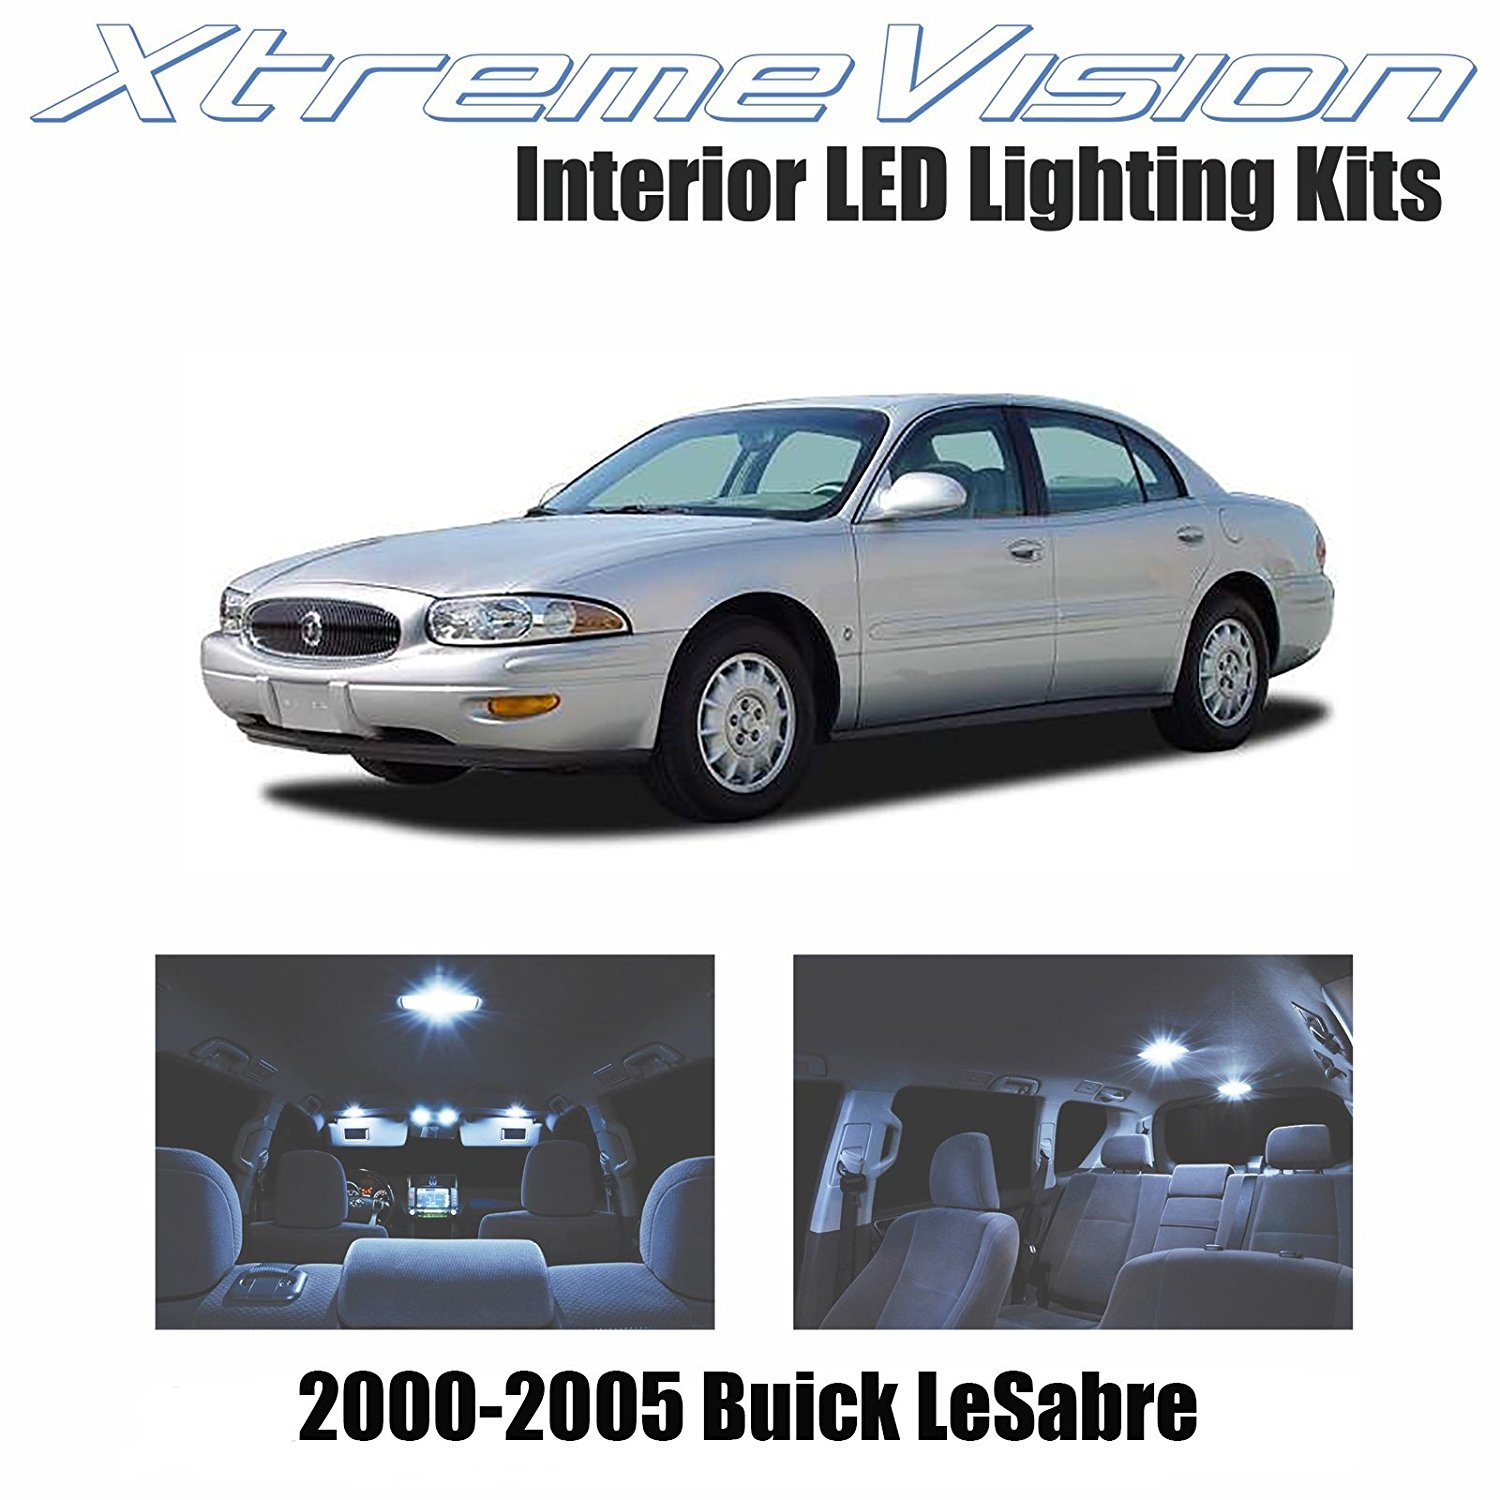 XtremeVision LED for Buick LeSabre 2000-2005 (20 Pieces) Cool White Premium Interior LED Kit Package + Installation Tool